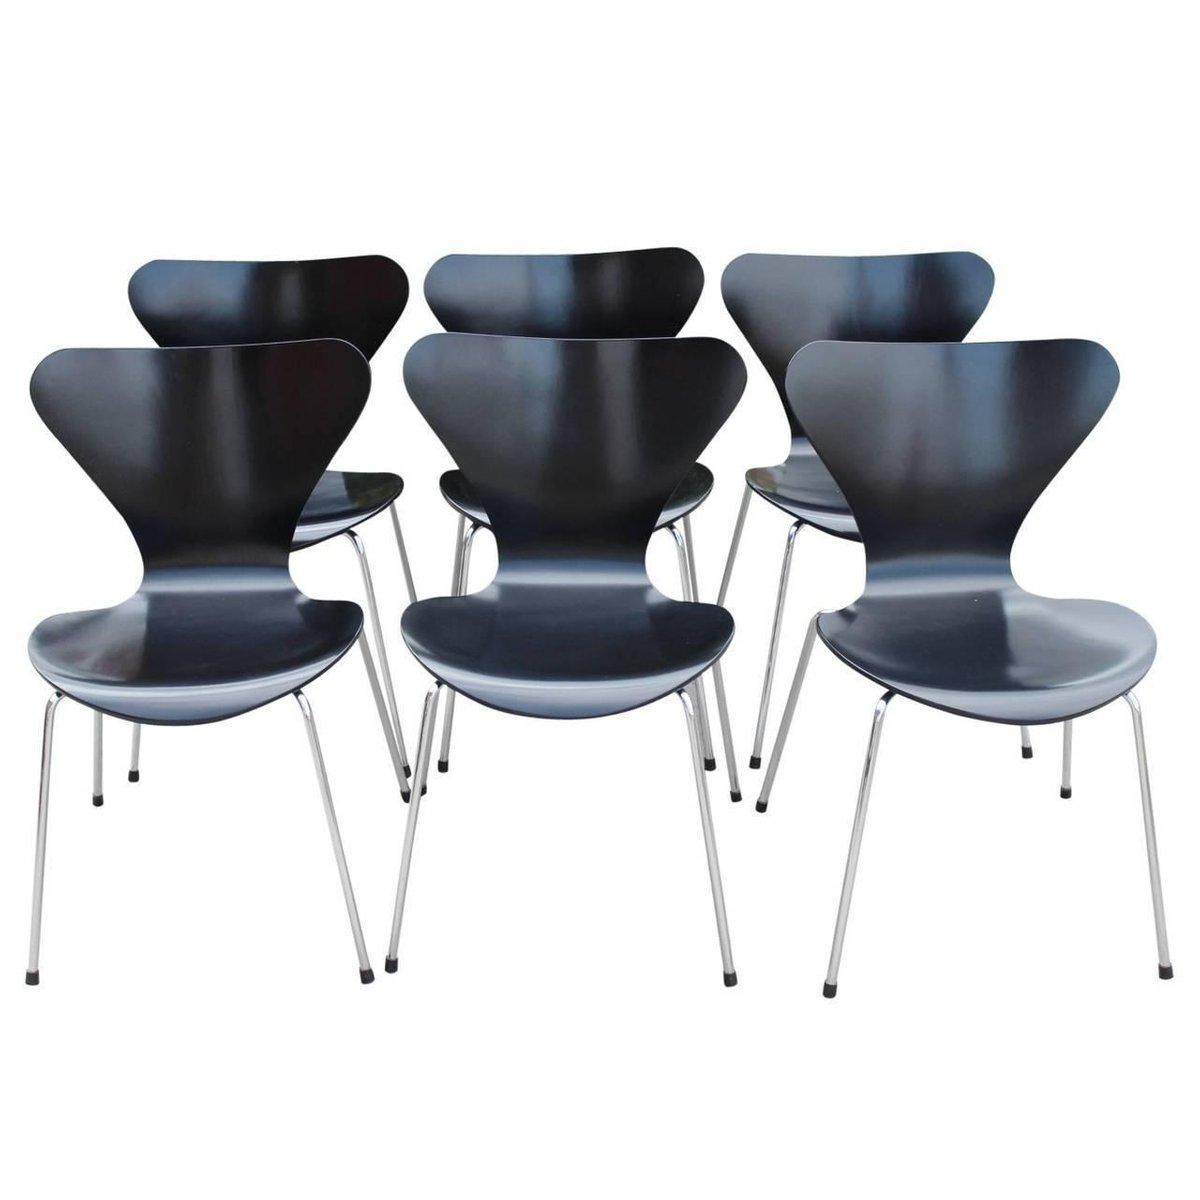 model 3107 dining chair by arne jacobsen for fritz hansen 1960s set of 6 for sale at pamono. Black Bedroom Furniture Sets. Home Design Ideas